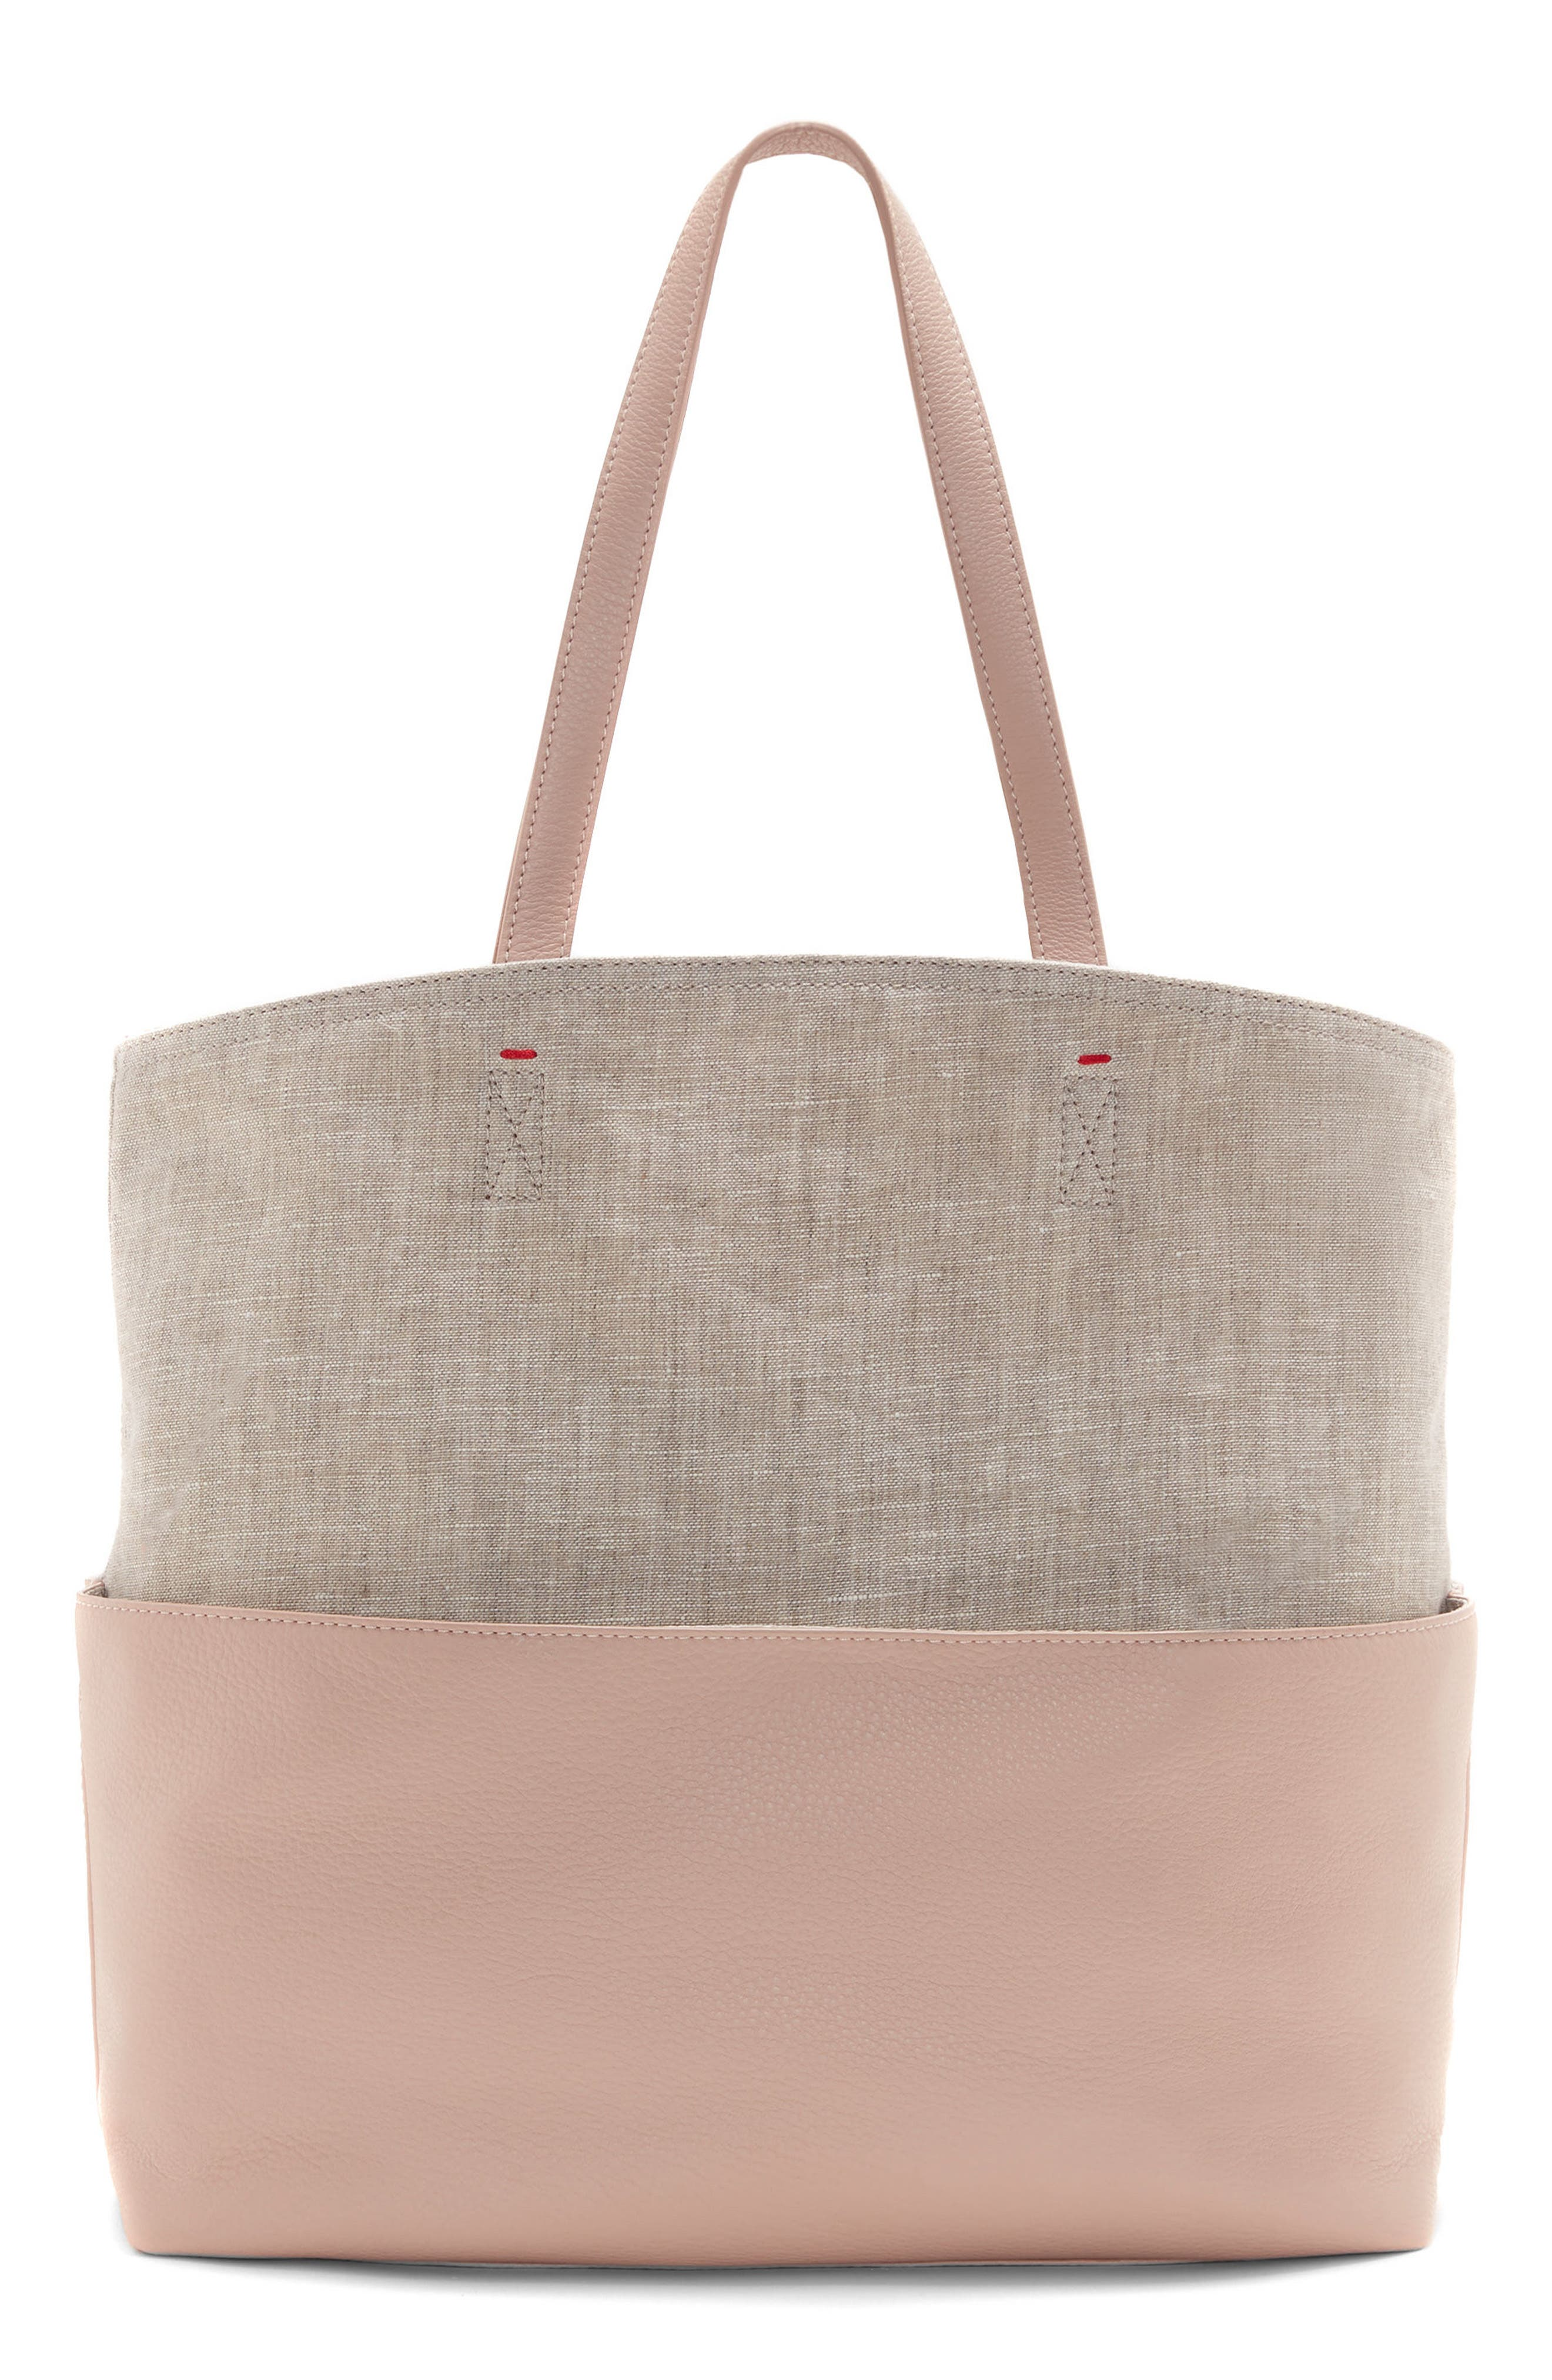 Henlee Canvas & Leather Tote,                             Alternate thumbnail 2, color,                             650